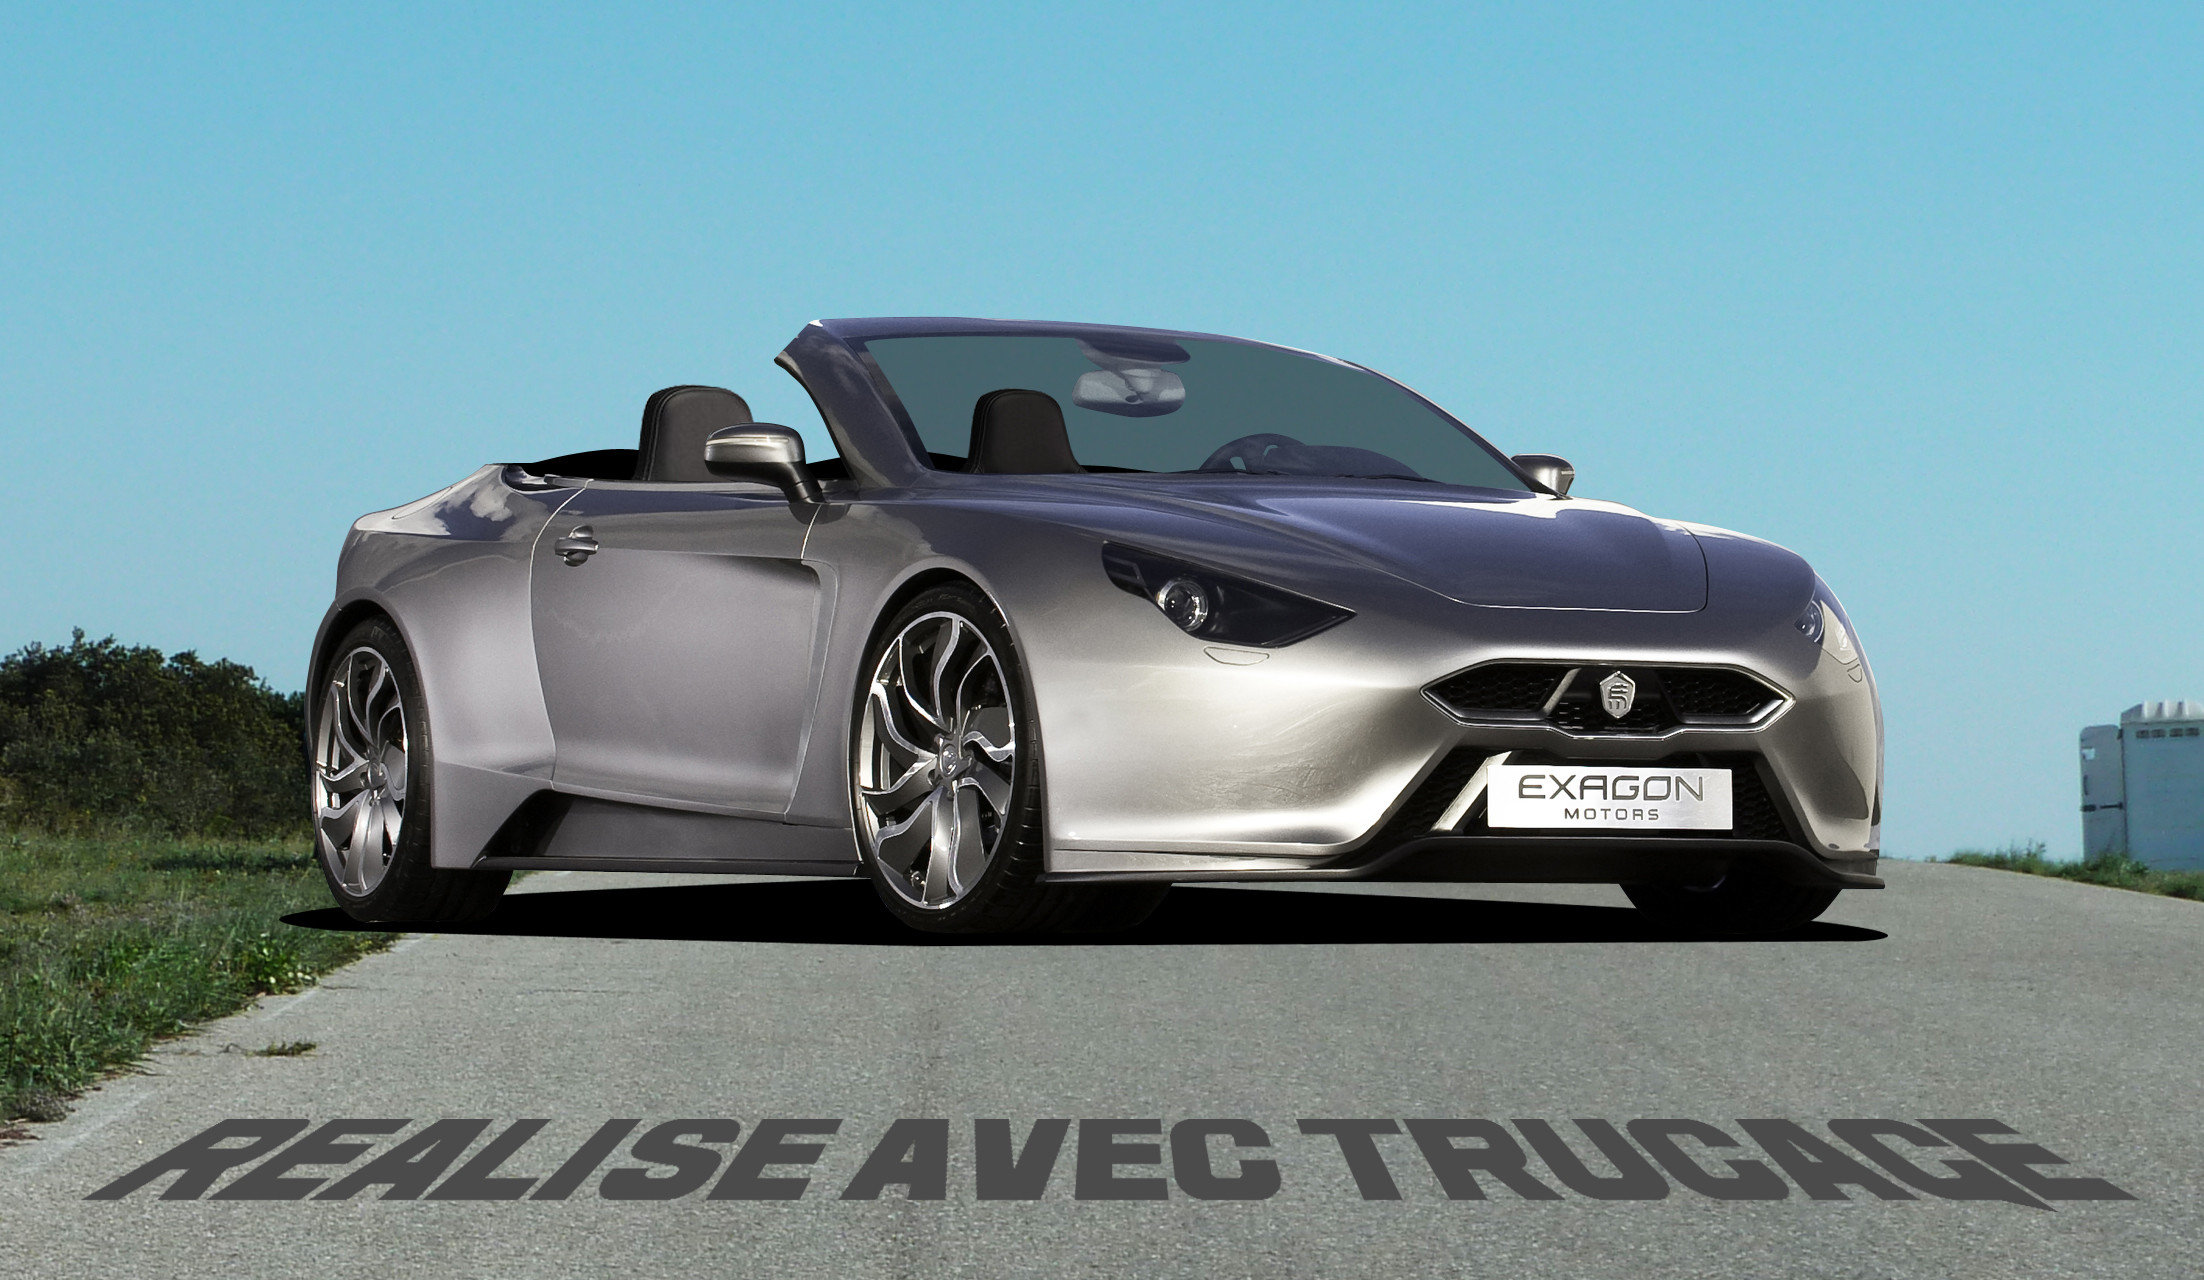 Exagon furtive cabriolet photoshop